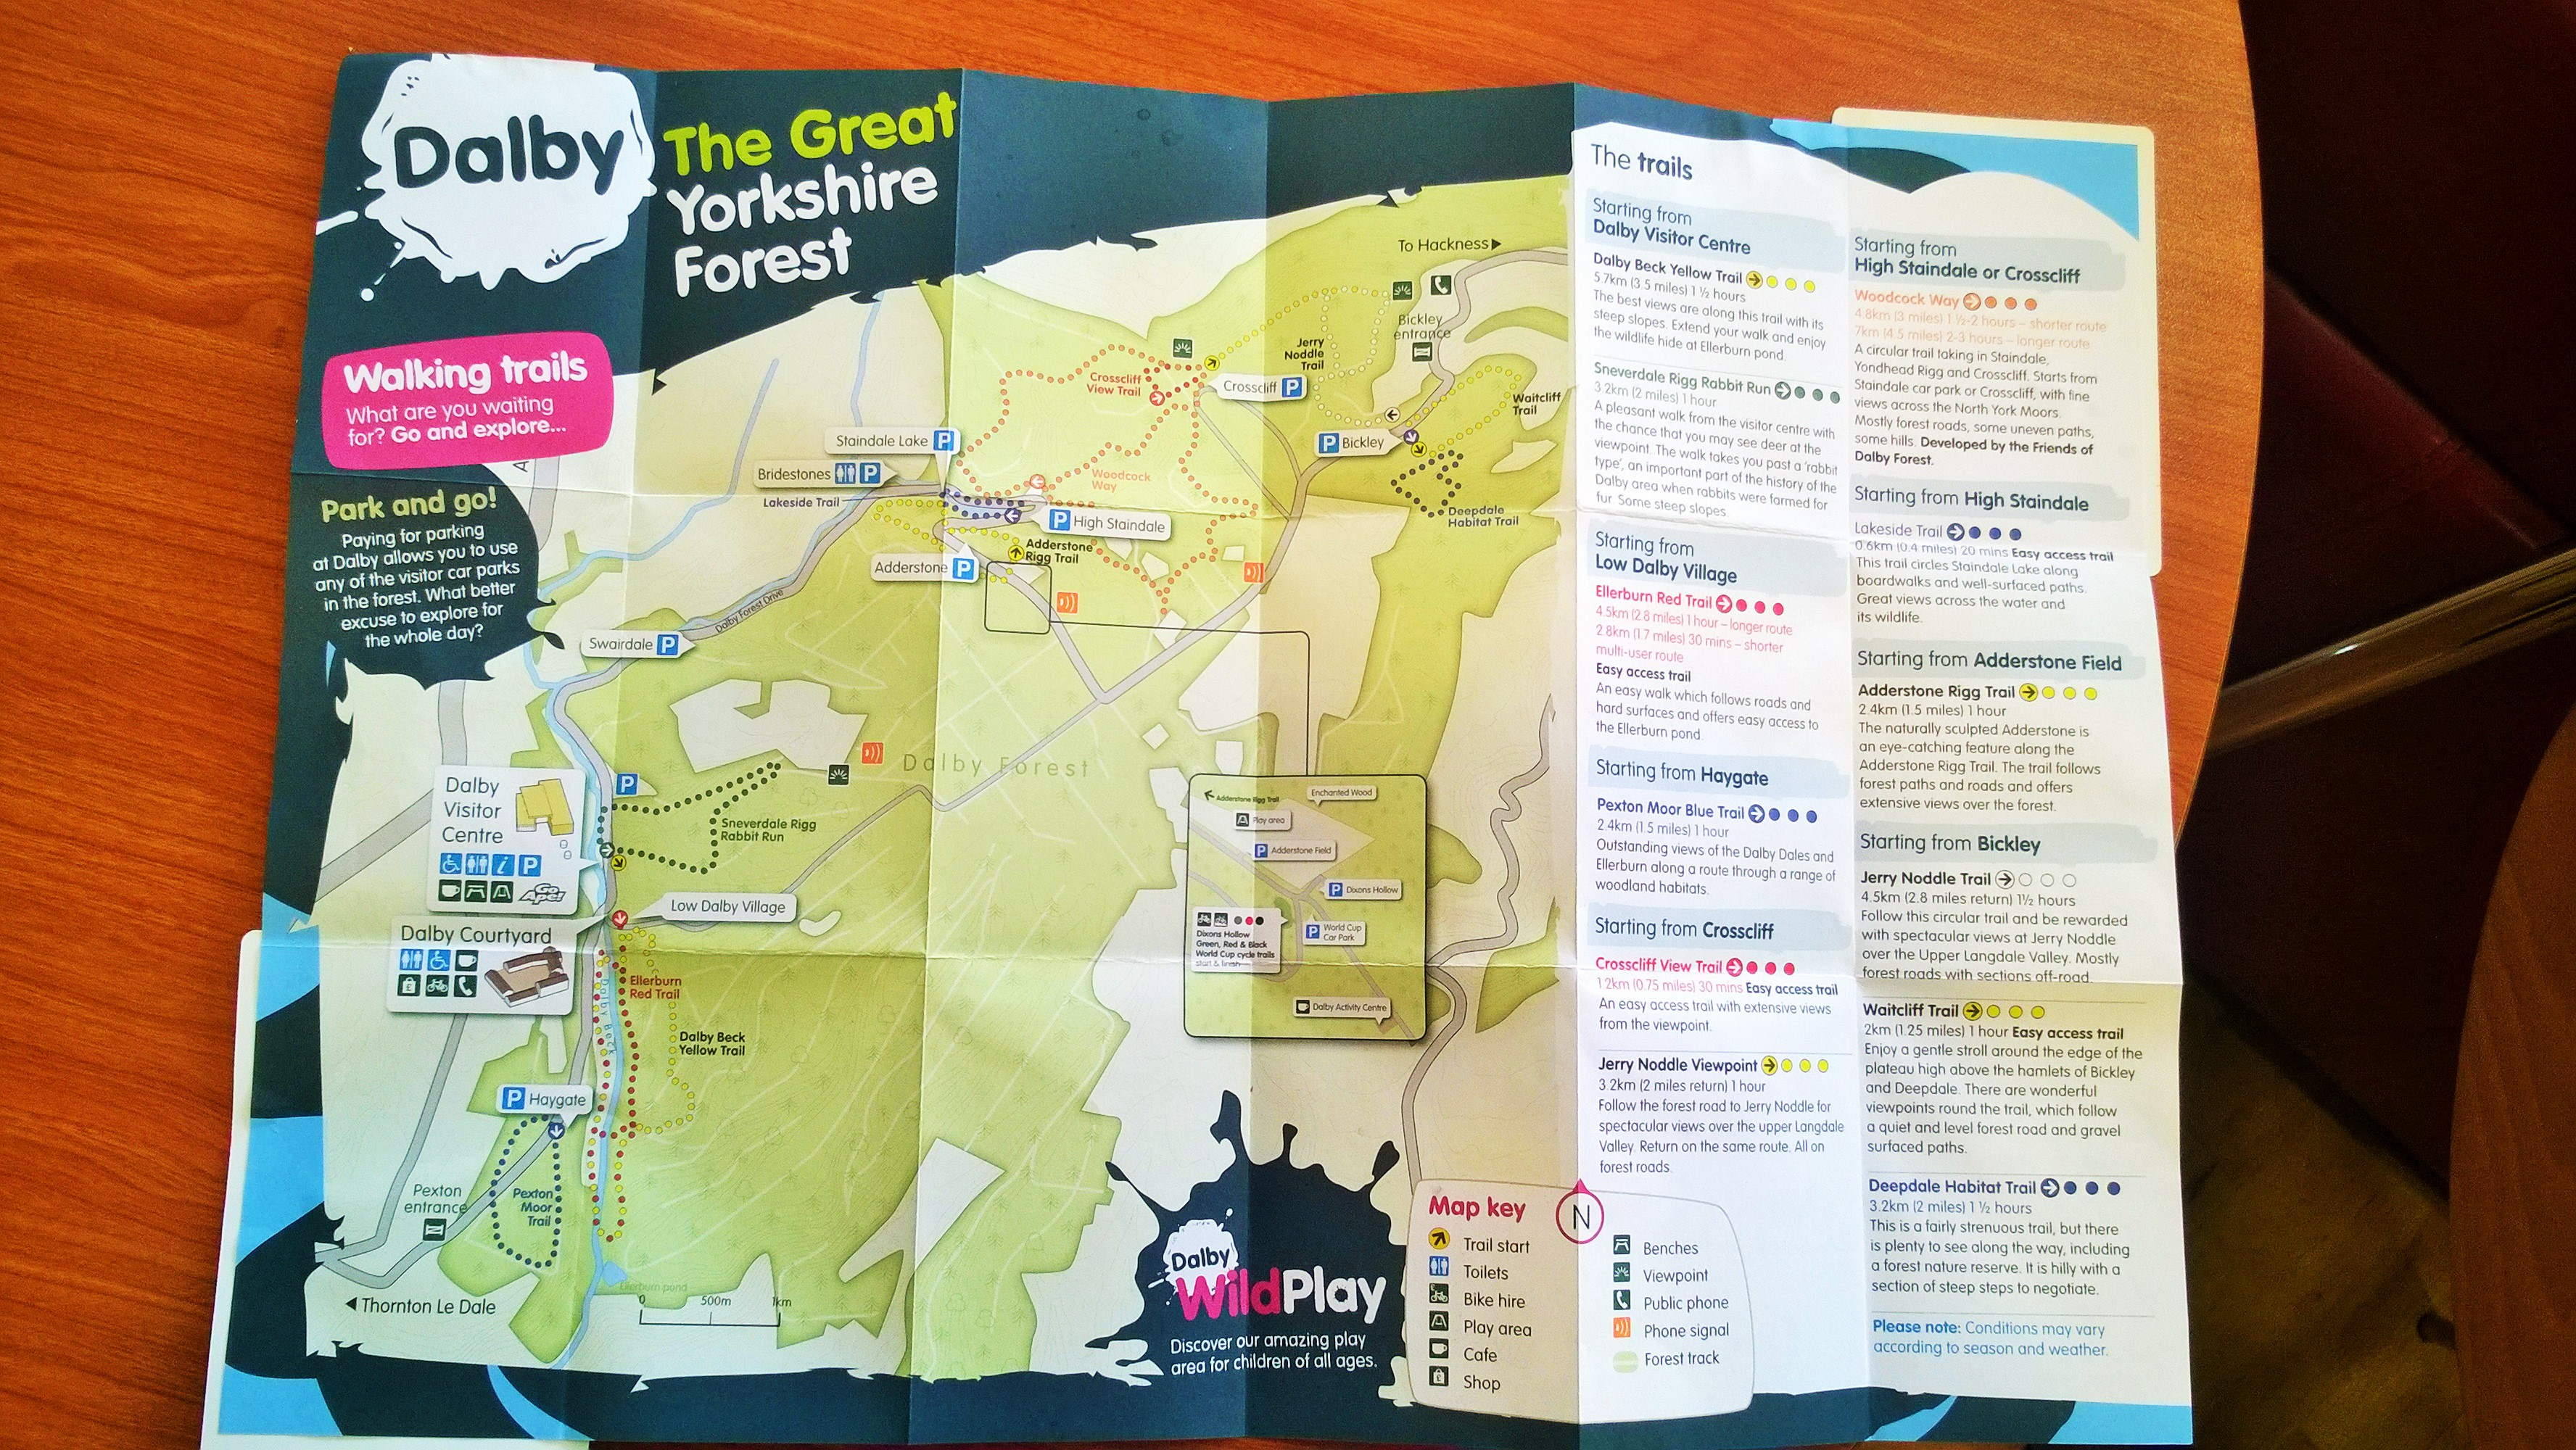 Dalby Forest Yorkshire  Becoming a Stay at Home Mum